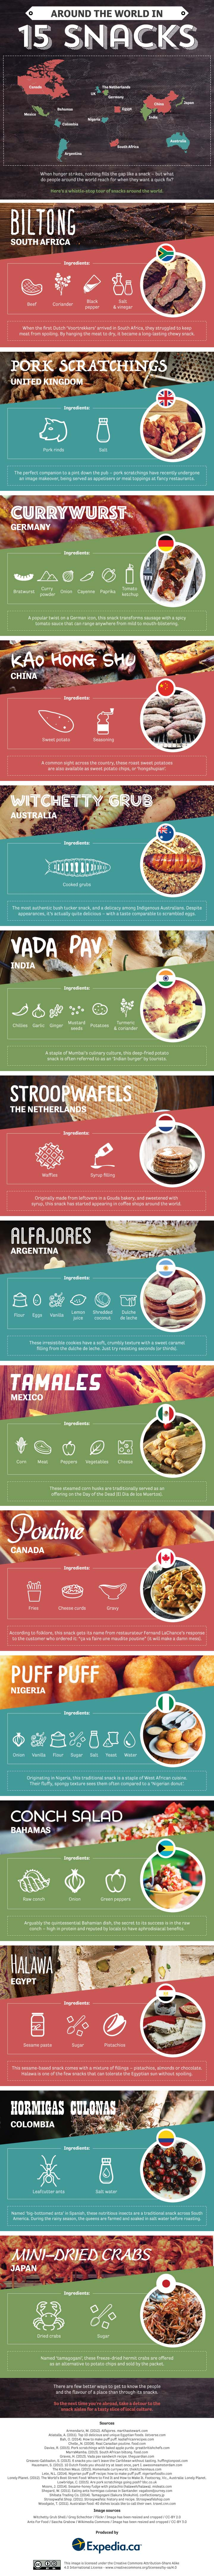 Around-the-world-in-15-snacks-v2-Melissa